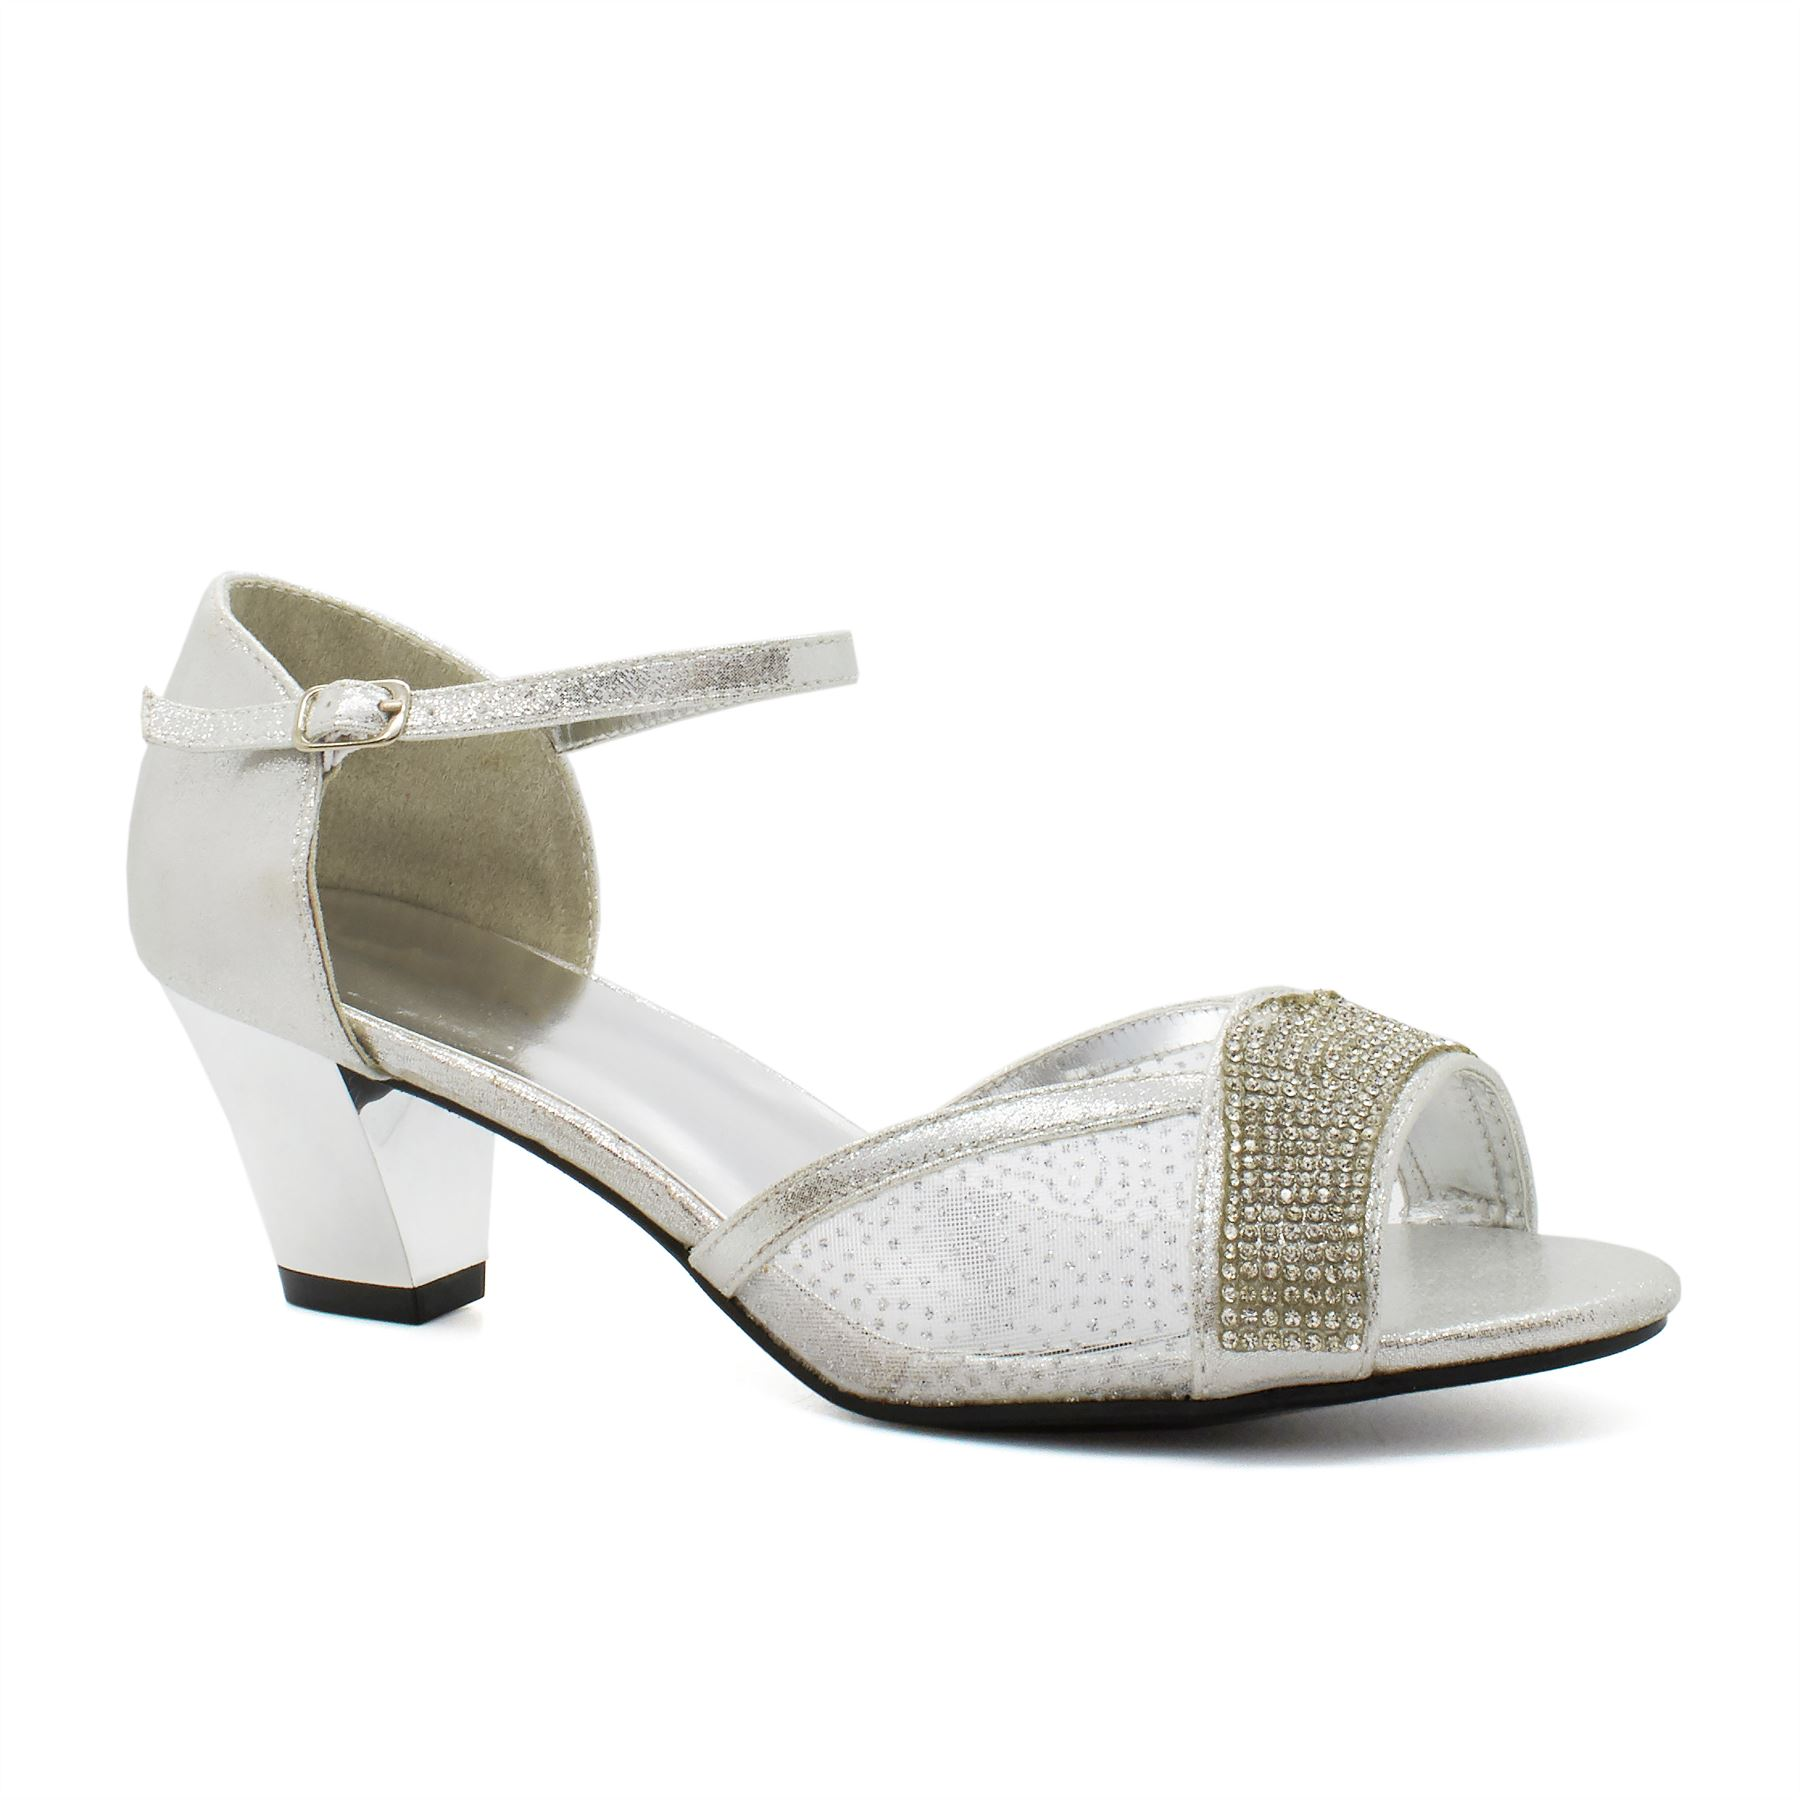 Strappy Wedding Shoes | New Womens Low Kitten Heel Bridal Diamante Sandals Ladies Strappy